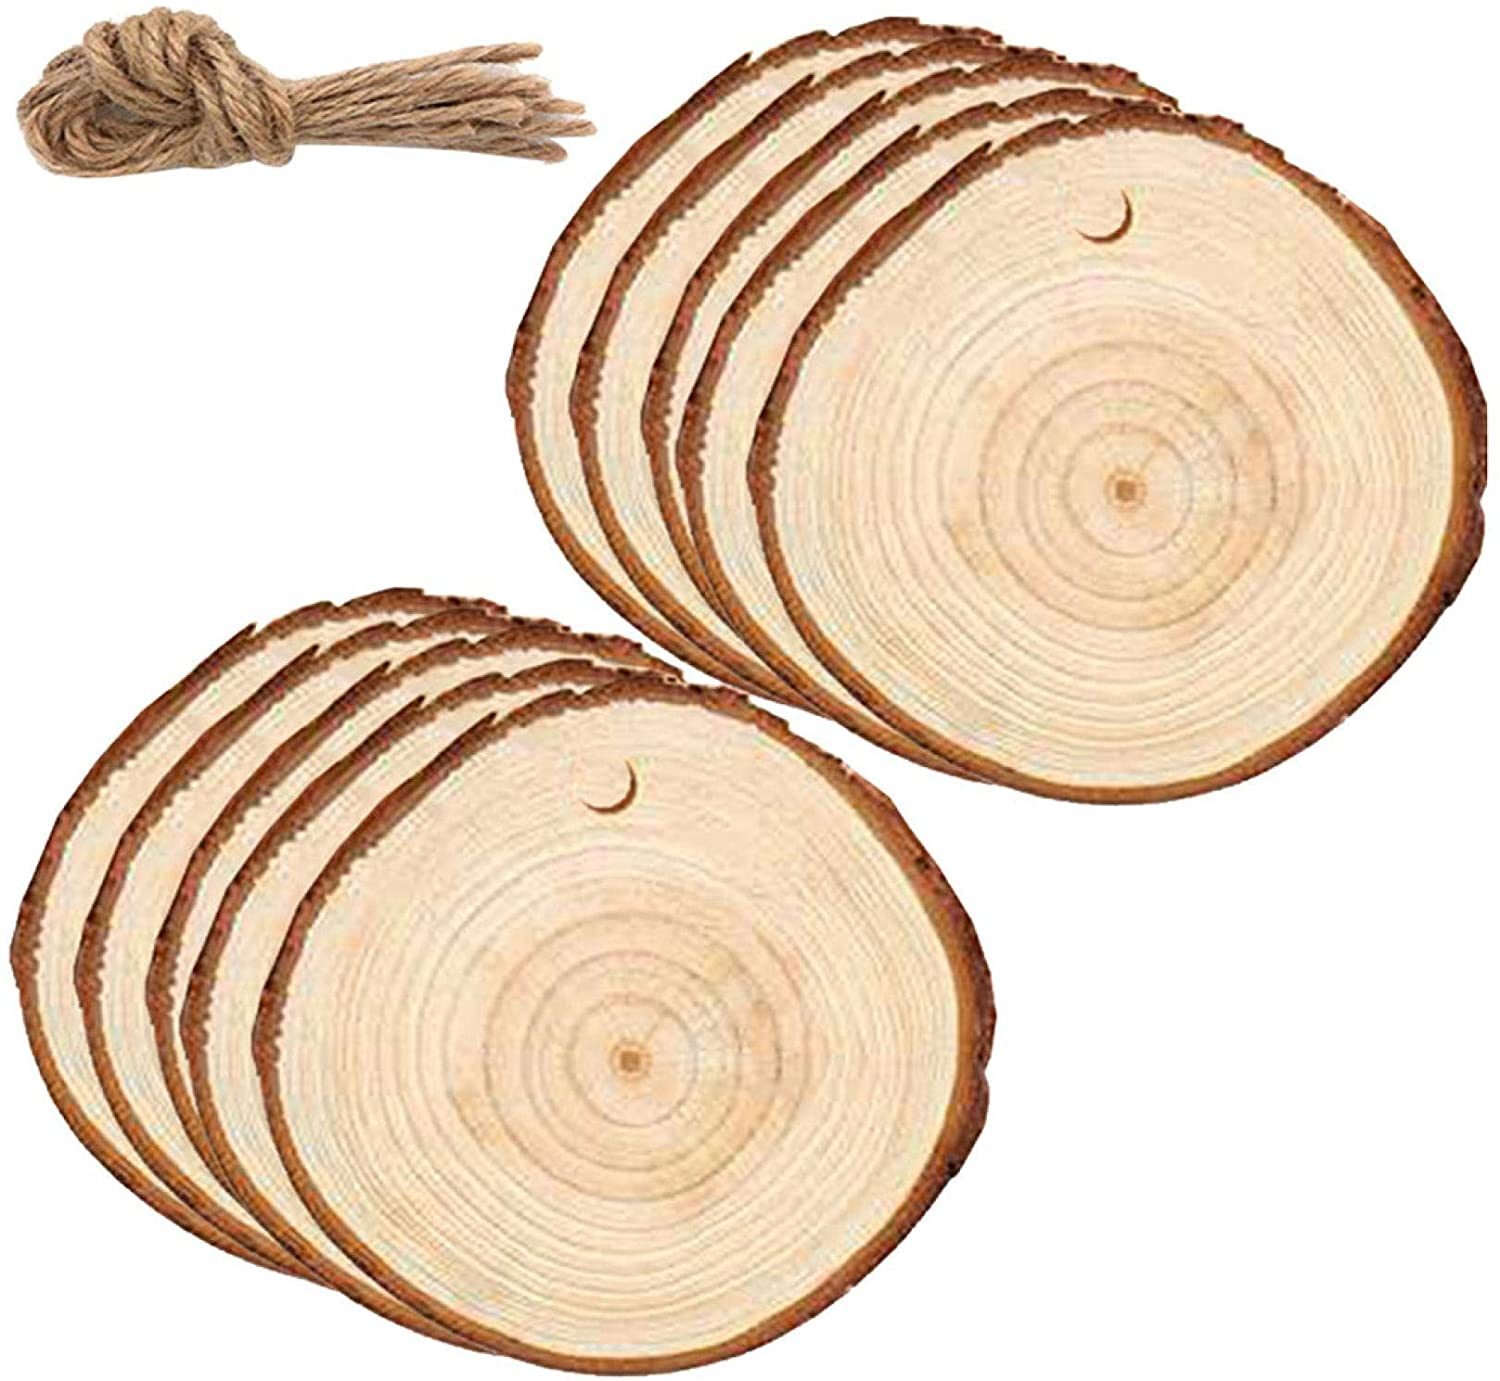 Natural Wood Slices 2.4-2.8 Inches Craft Wood Kit Unfinished Predrilled with Hole Wooden Circles Tree Slices for Arts and Crafts Christmas Ornaments DIY Crafts (30 Pack)